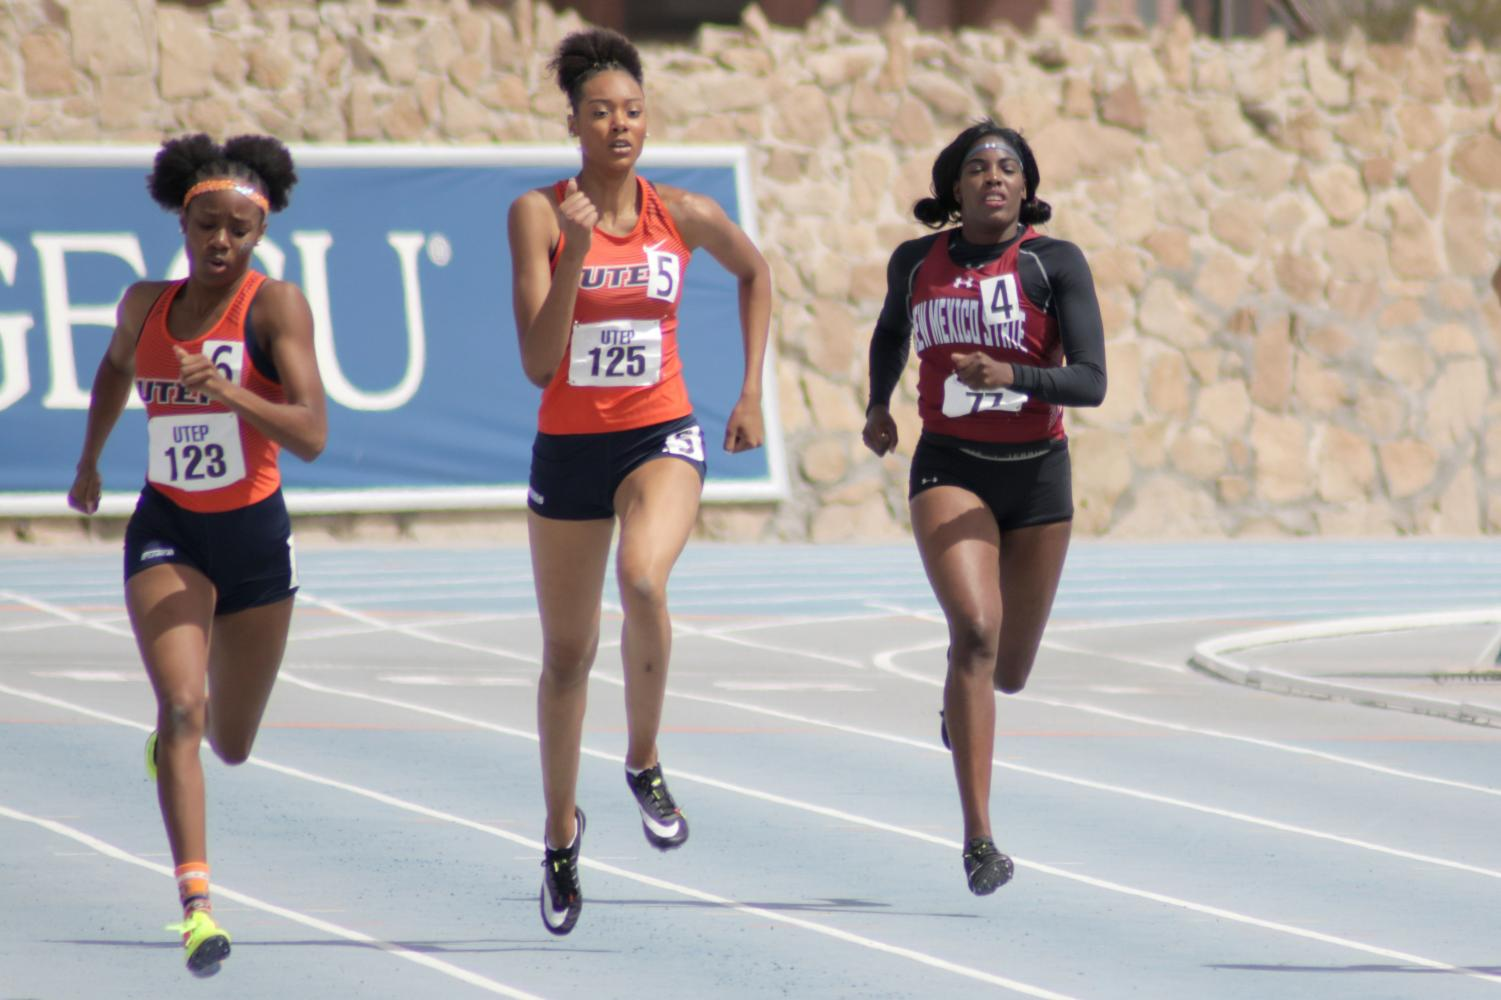 UTEP women's track hopes to repeat last year's title win in this year's C-USA championships.